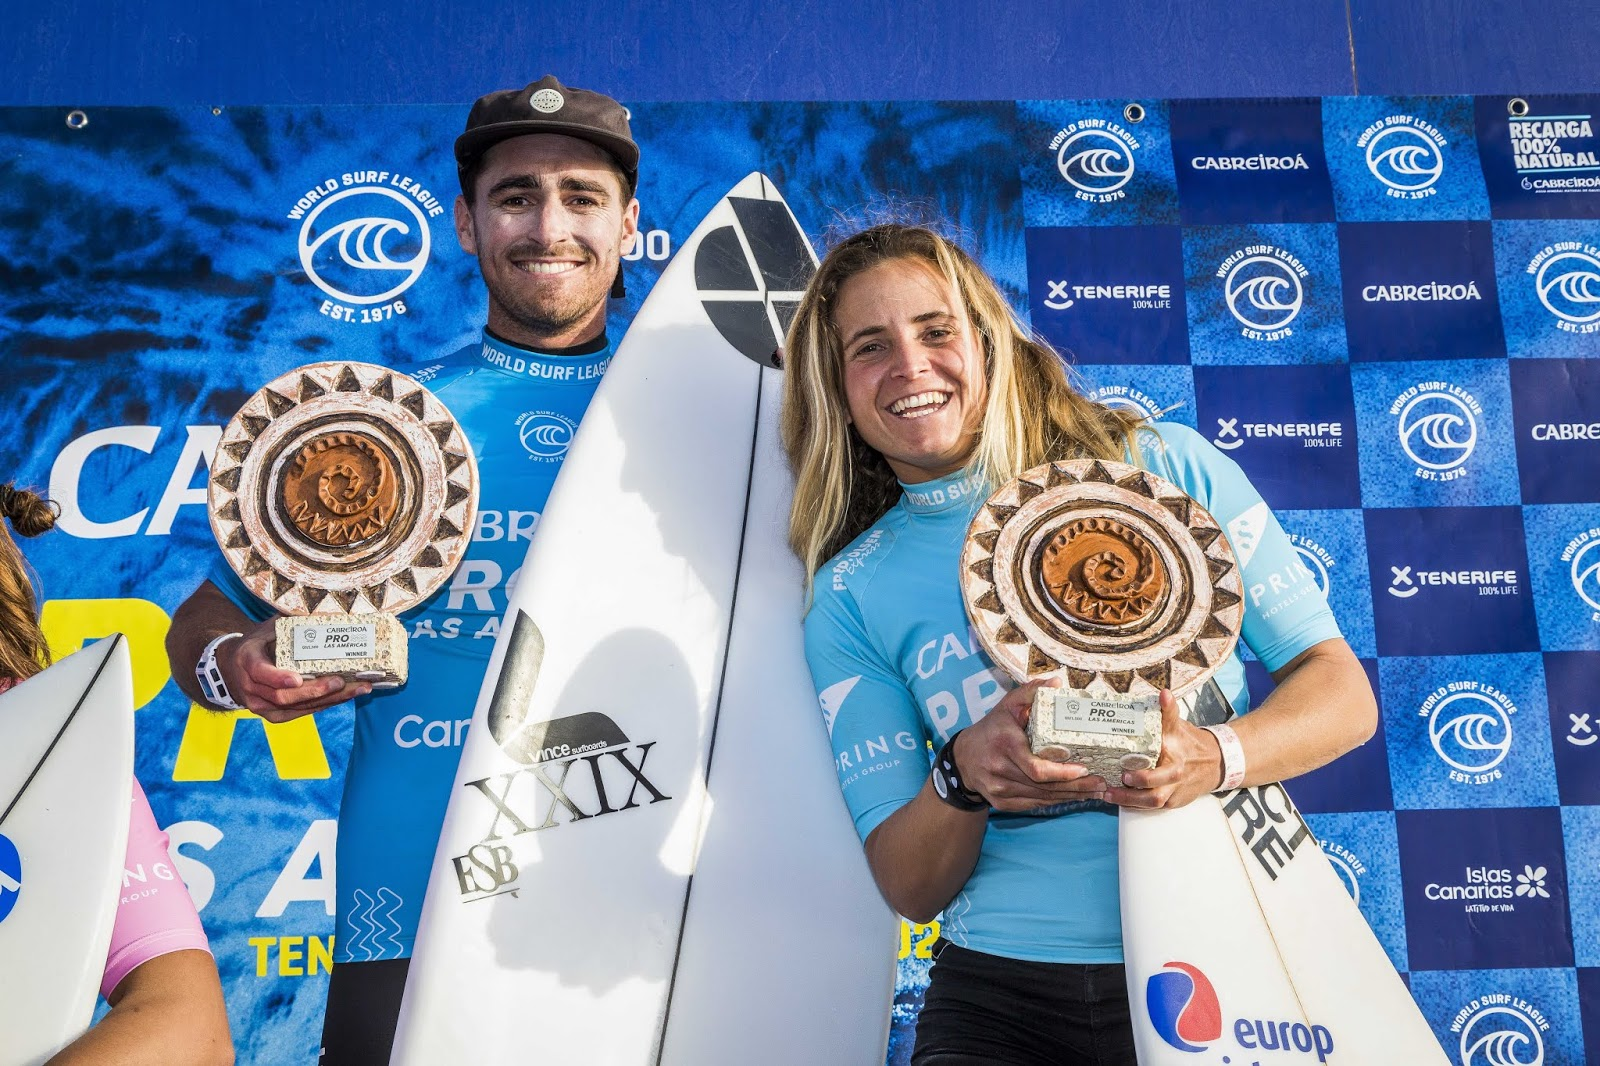 French Duo Takes It All Out 2020 Cabreiroá Pro Las Americas Highlights